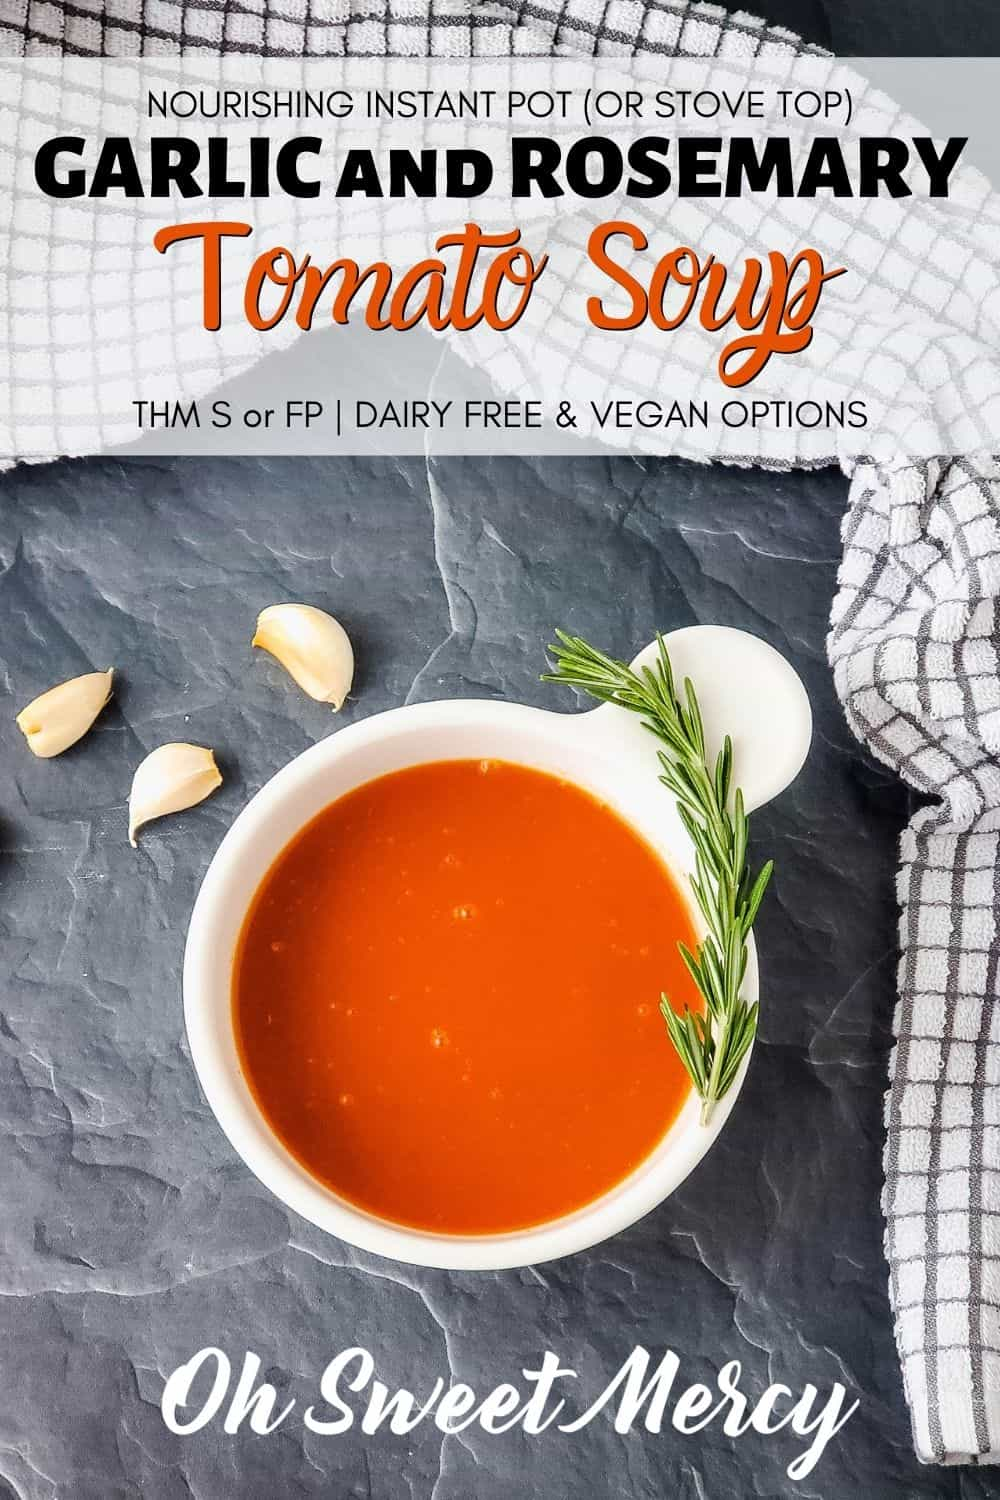 Craving a comforting bowl of soup? Nourishing and soothing, this Garlic Rosemary Tomato Soup needs just a few wholesome ingredients. It's best made in an Instant Pot, but stove top preparation still makes a delicious soup. Vegan and dairy free options, too. THM S but could be made for FP as well. #thm #instantpot #homemade #soup @ohsweetmercy